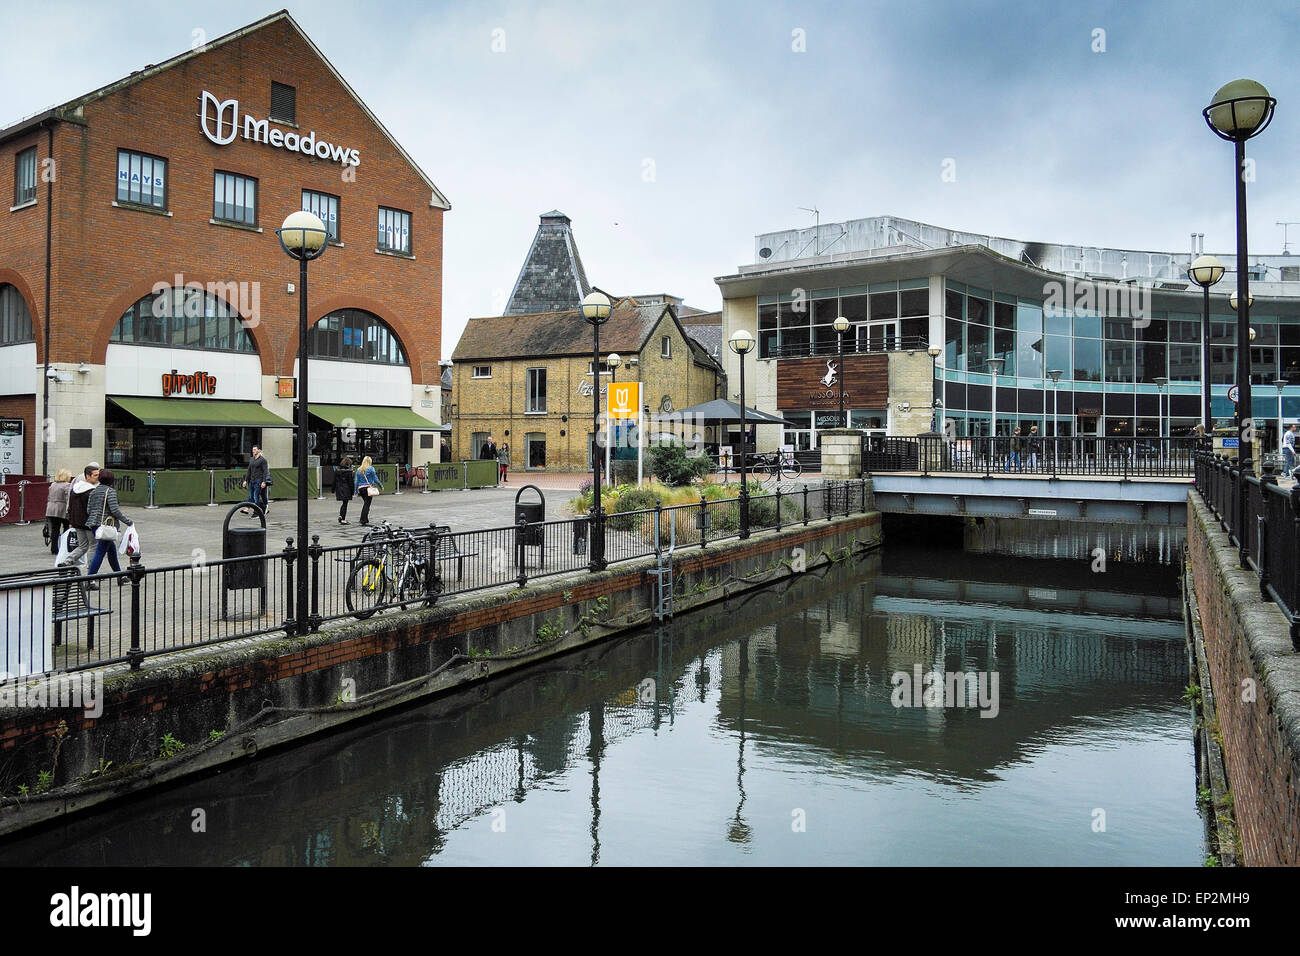 The River Chelmer running through Chelmsford City centre. - Stock Image